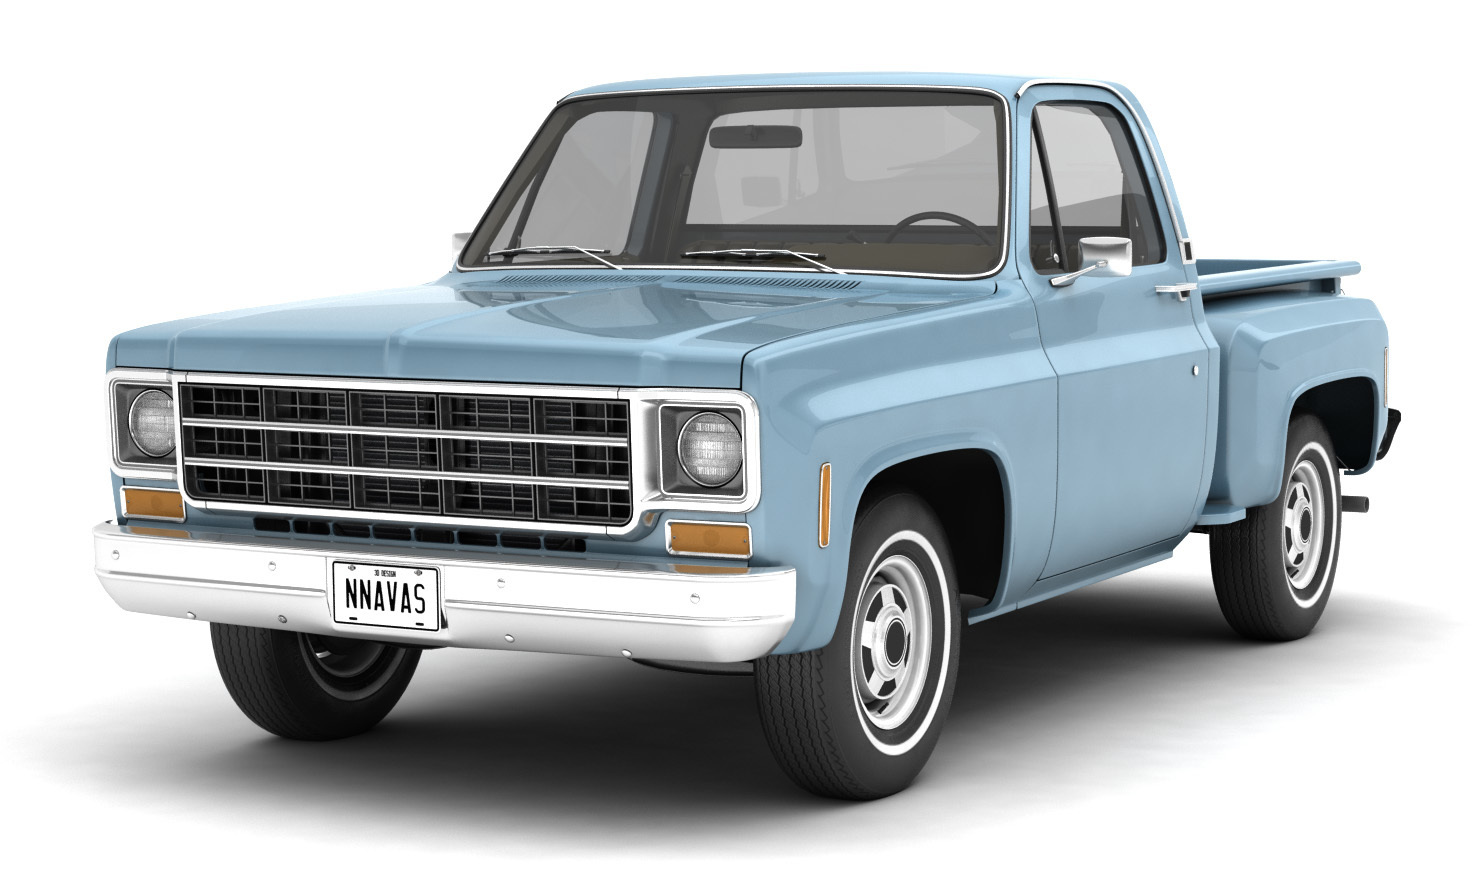 GENERIC STEP SIDE PICKUP TRUCK 10 - Extended License